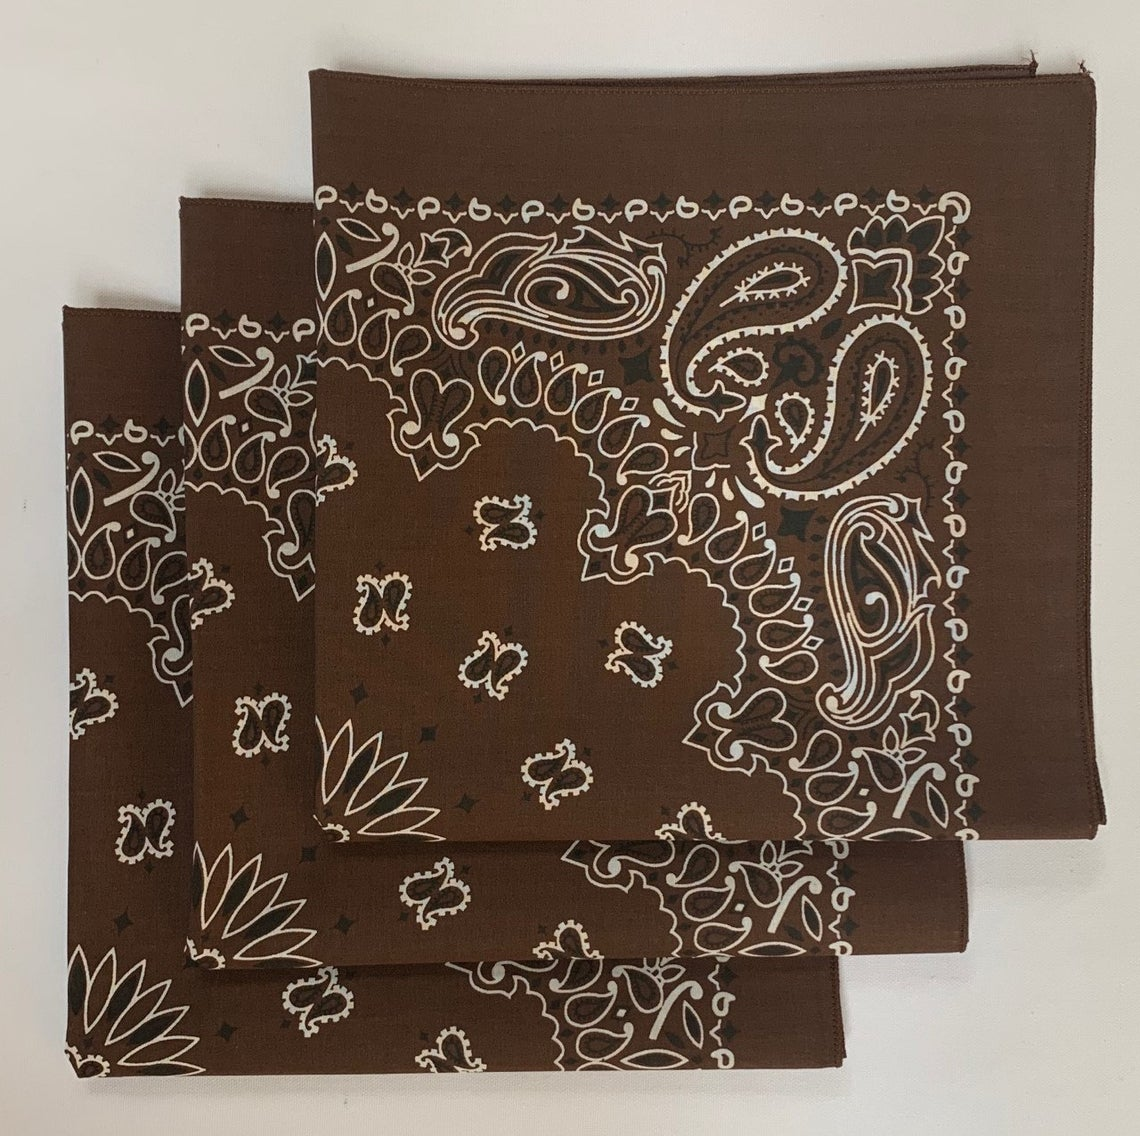 "Brown Paisley Bandanas - Made In The USA (3 Pk) 22"" x 22"""